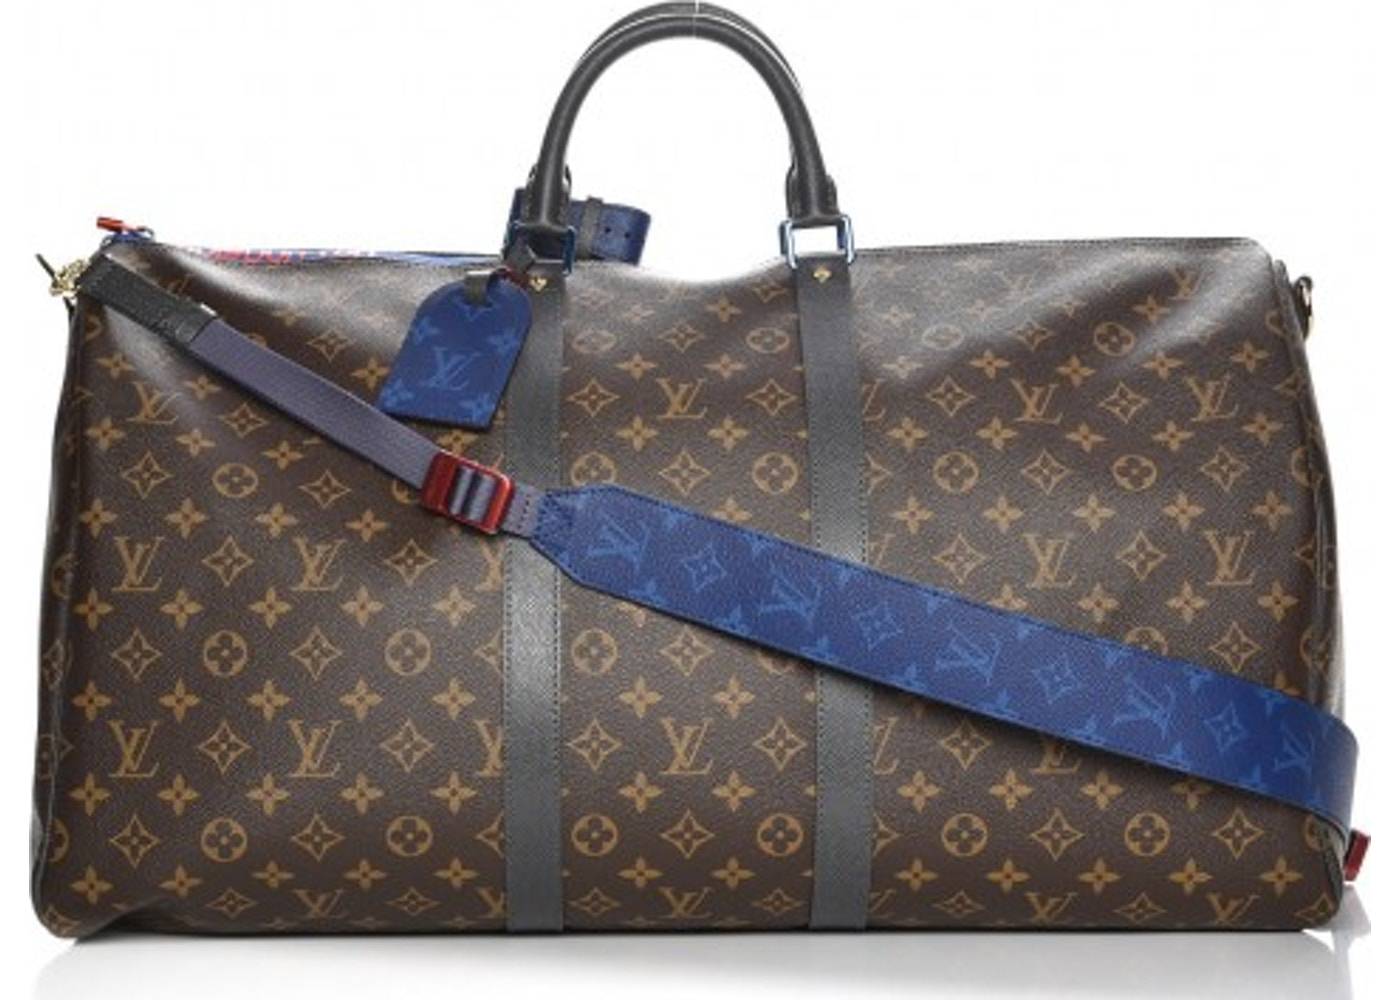 850b97380 Louis Vuitton Keepall Bandouliere Monogram Outdoor 55 Brown. Monogram  Outdoor 55 Brown